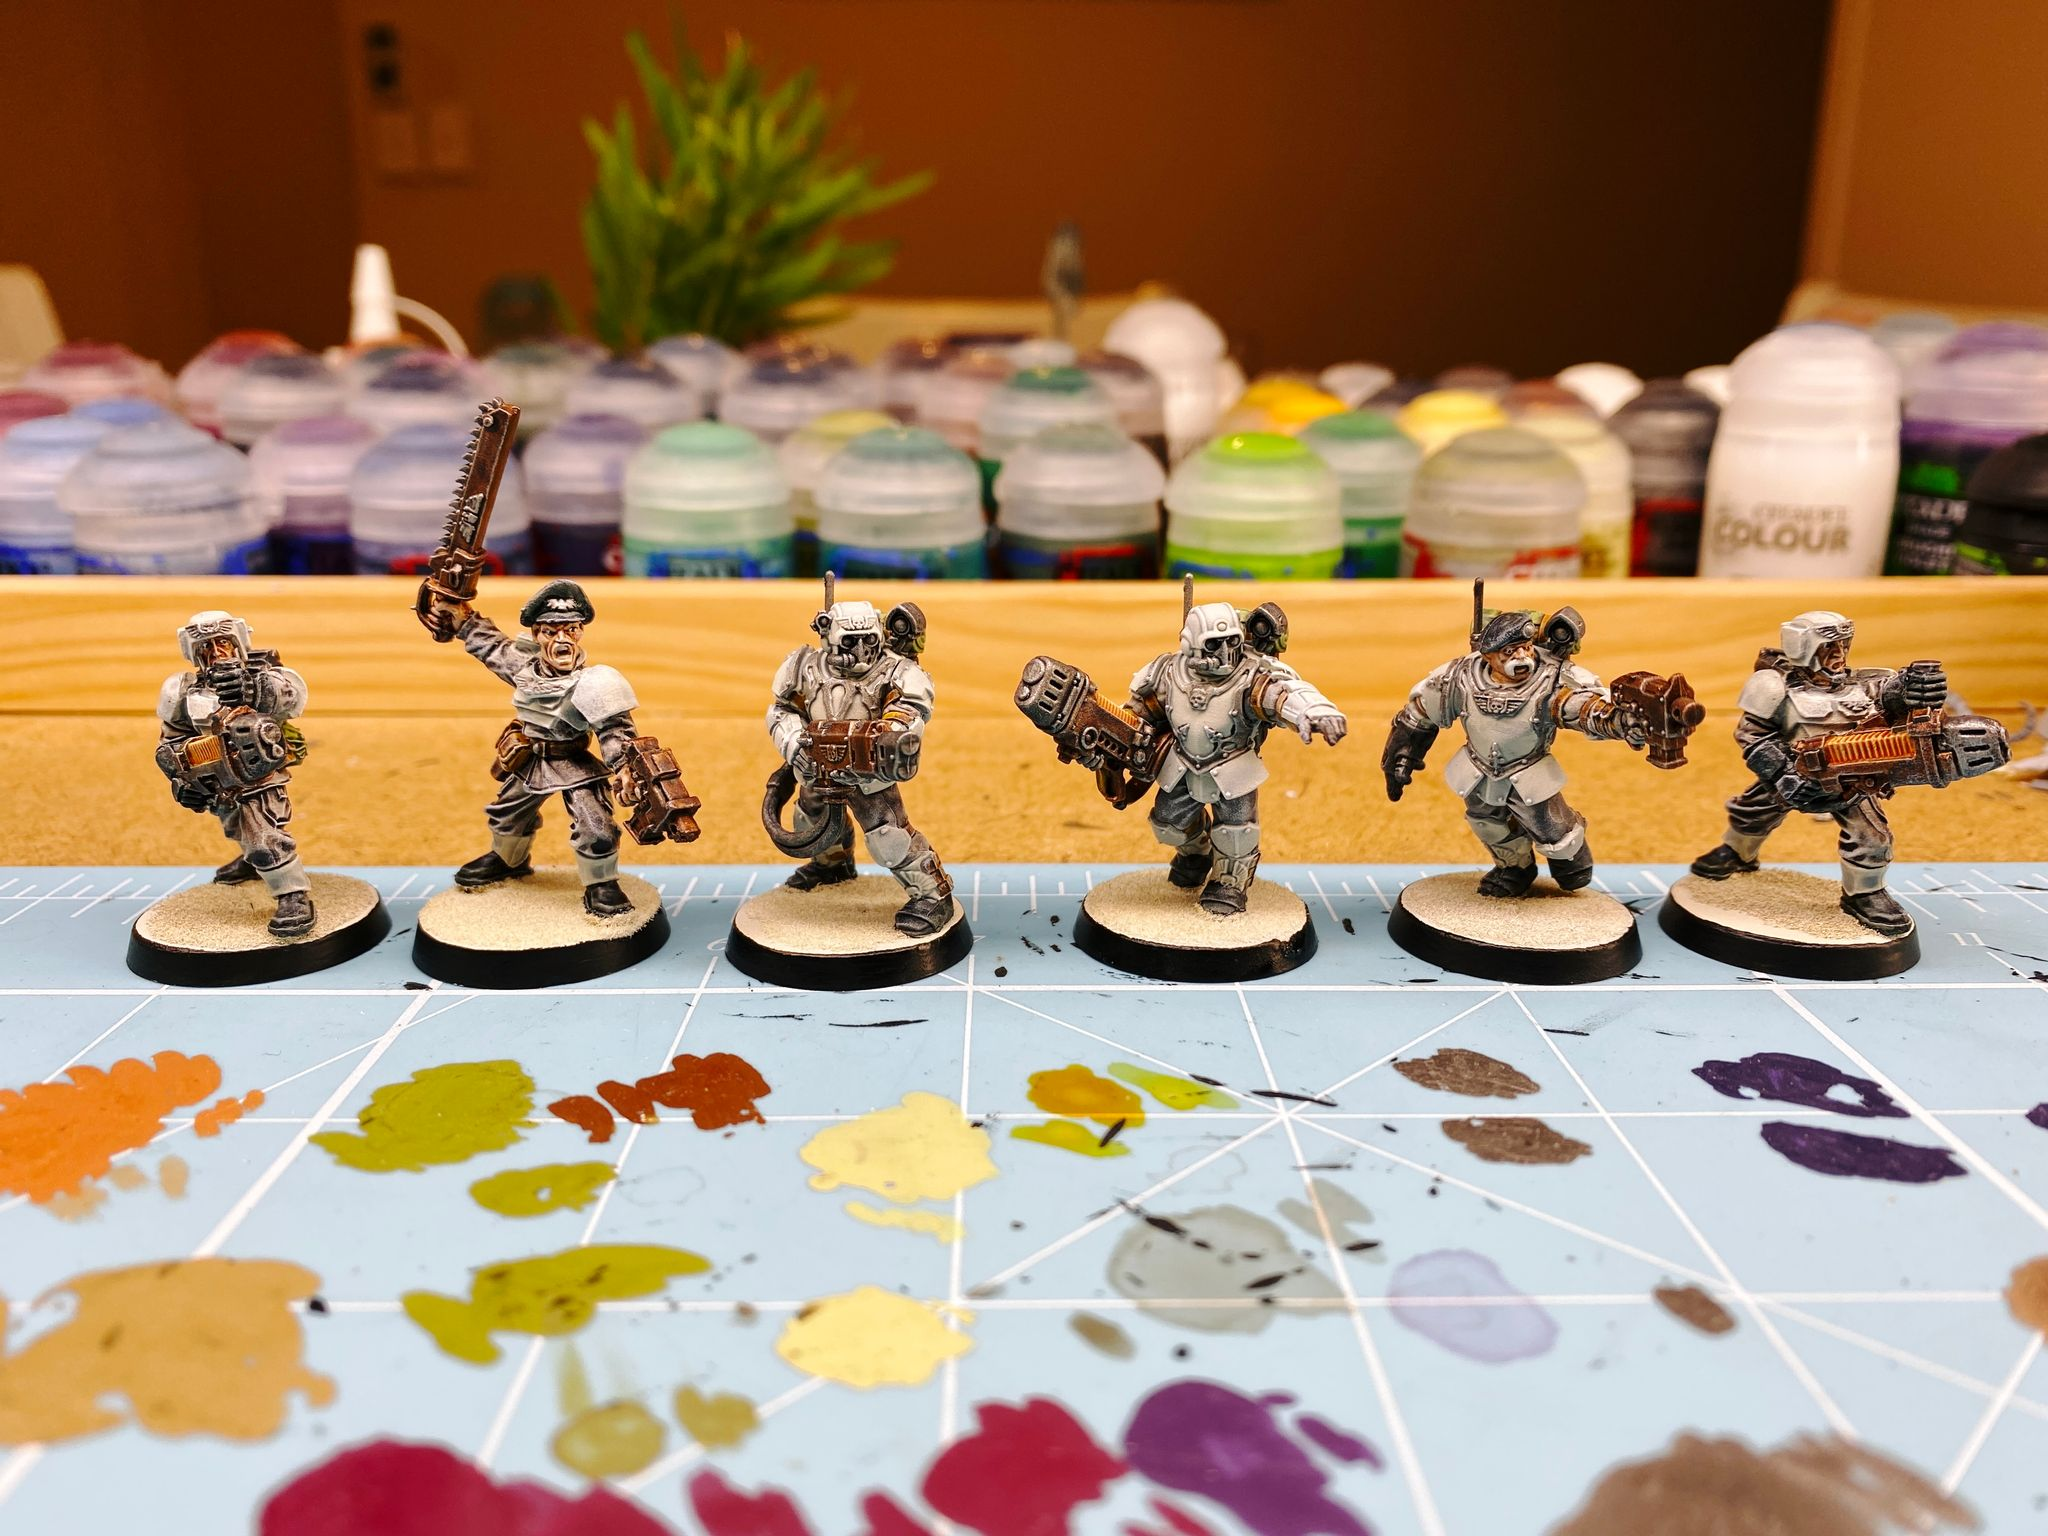 A photo of six Astra Militarum guardsmen from Warhammer 40,000. Their armour is very light grey bordering on white like they're ready for winter action. They're brandishing a variety of weapons, one is a sergeant holding a chainsword above his head, another has a sweet handlebar moustache.